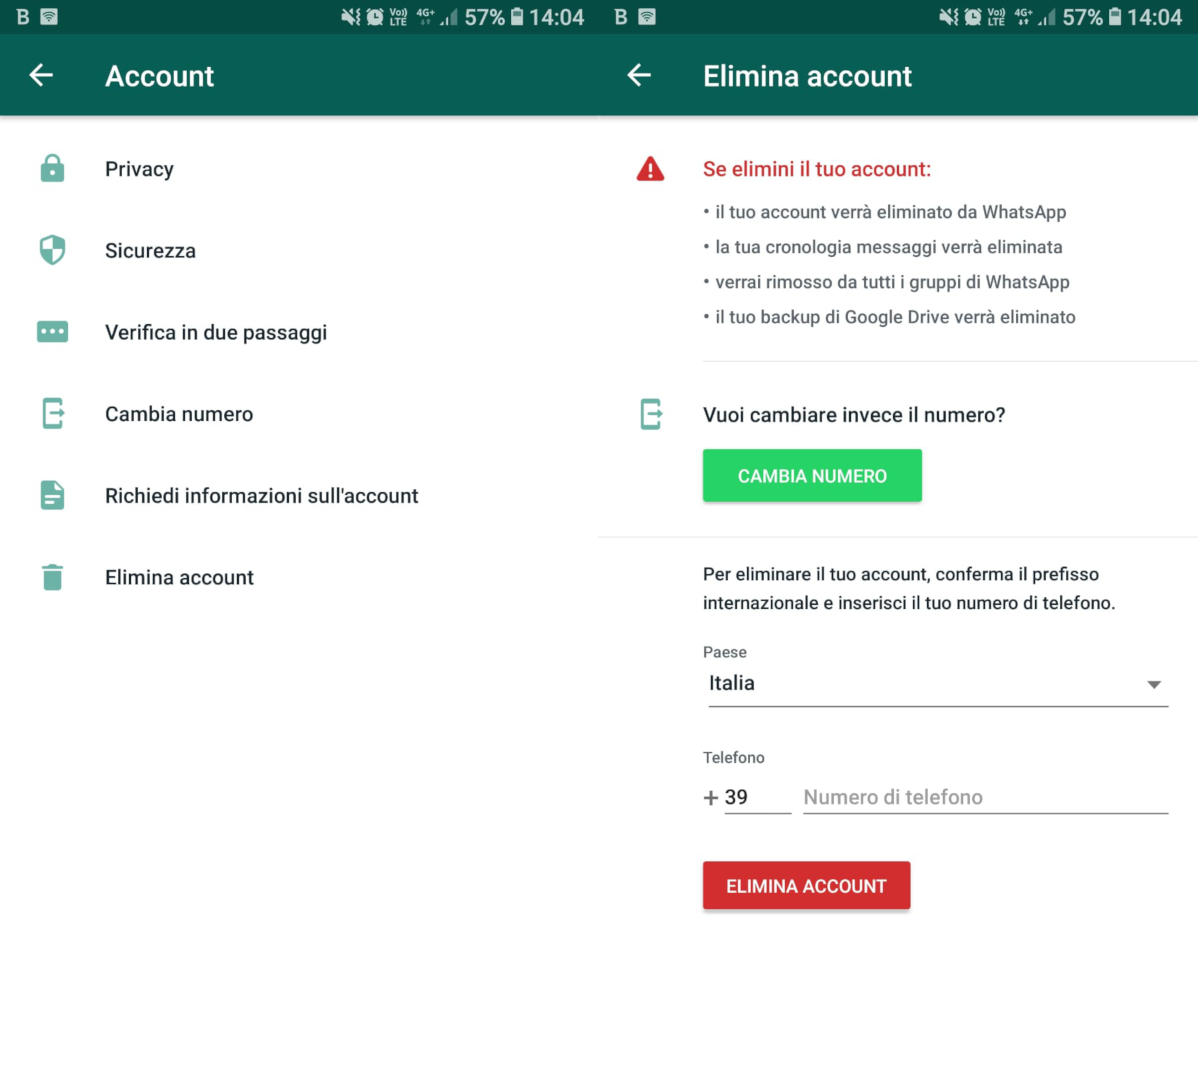 come cancellare account WhatsApp eliminazione definitiva